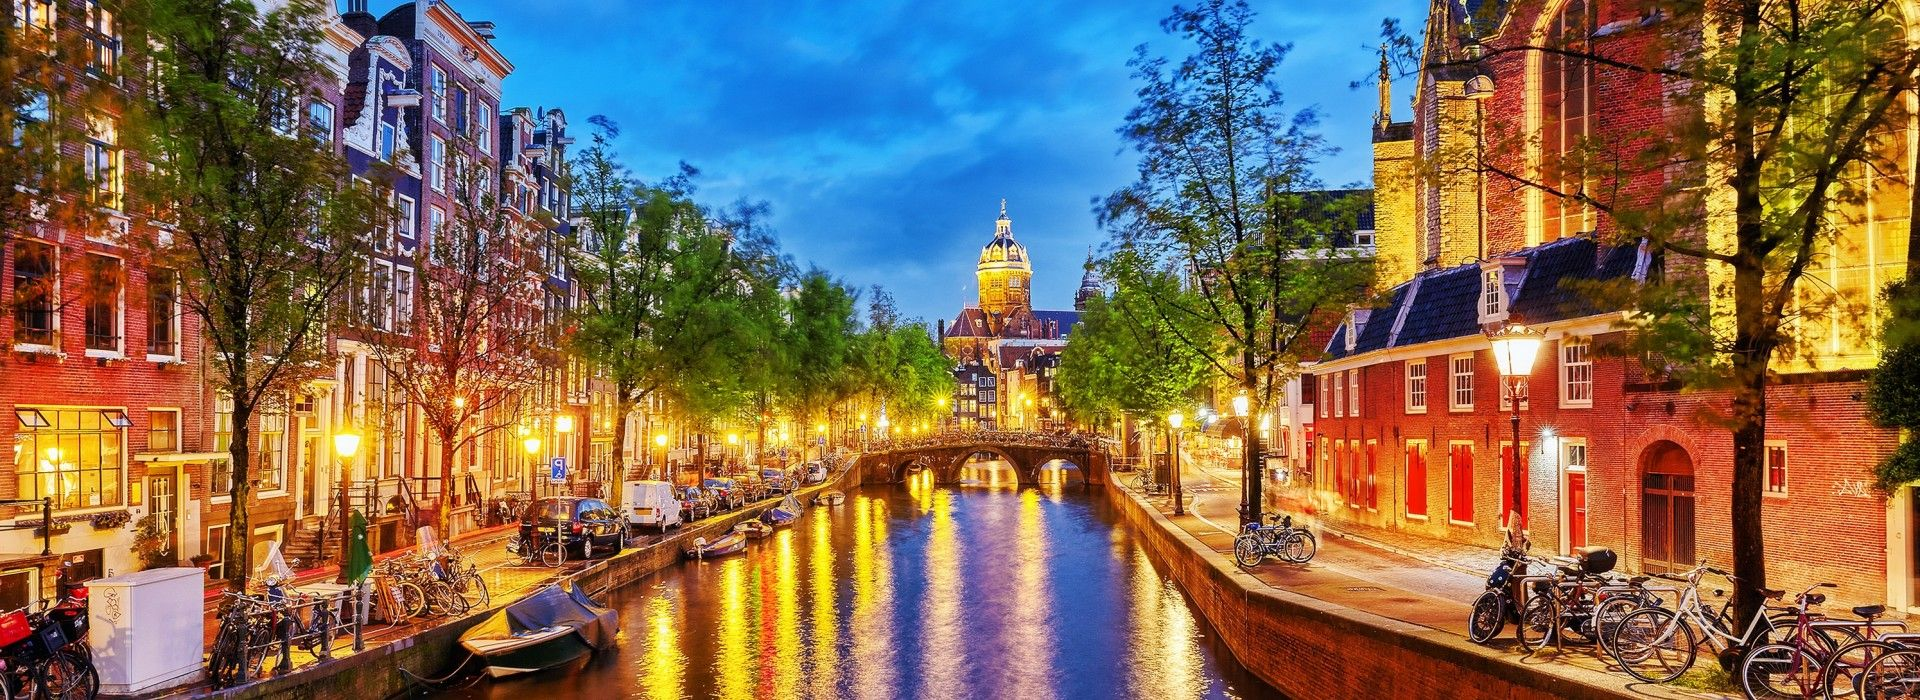 Holand Tours and Trips to Holland